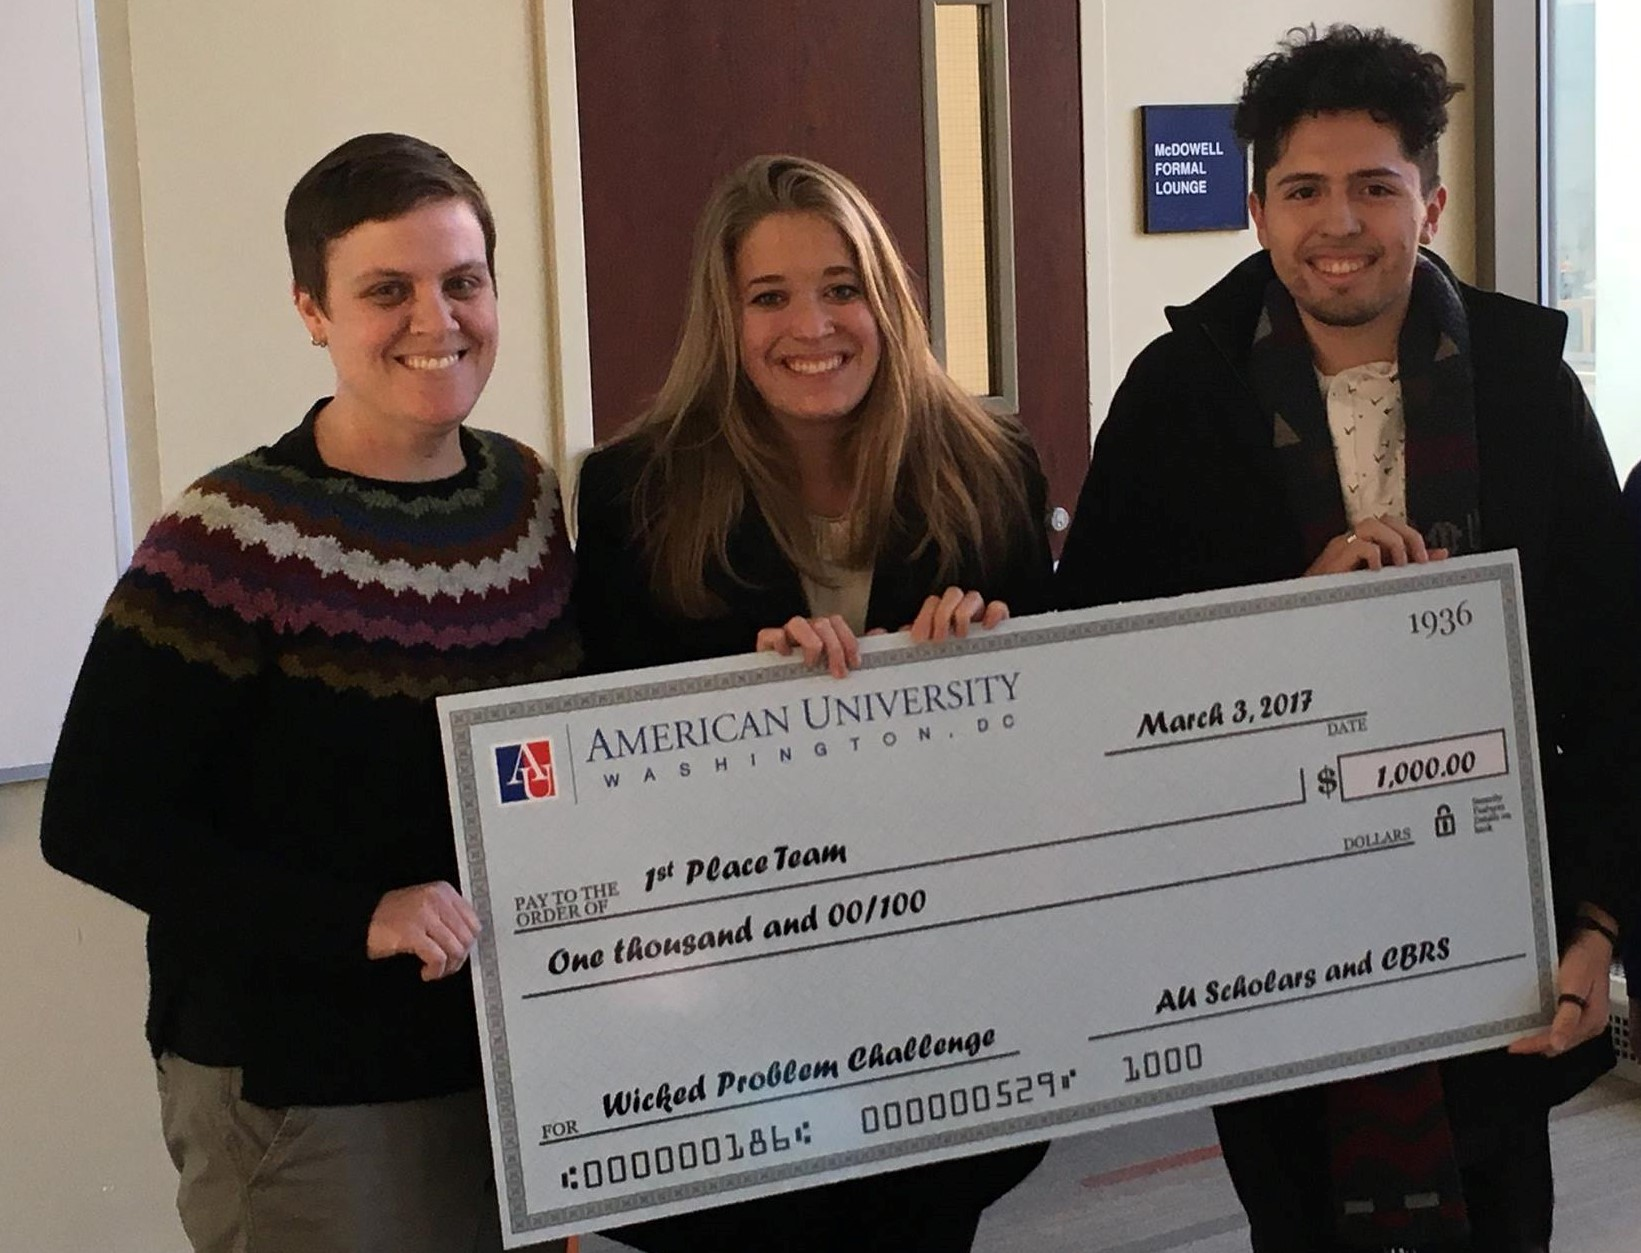 Wicked Problem challenge winners with prize check